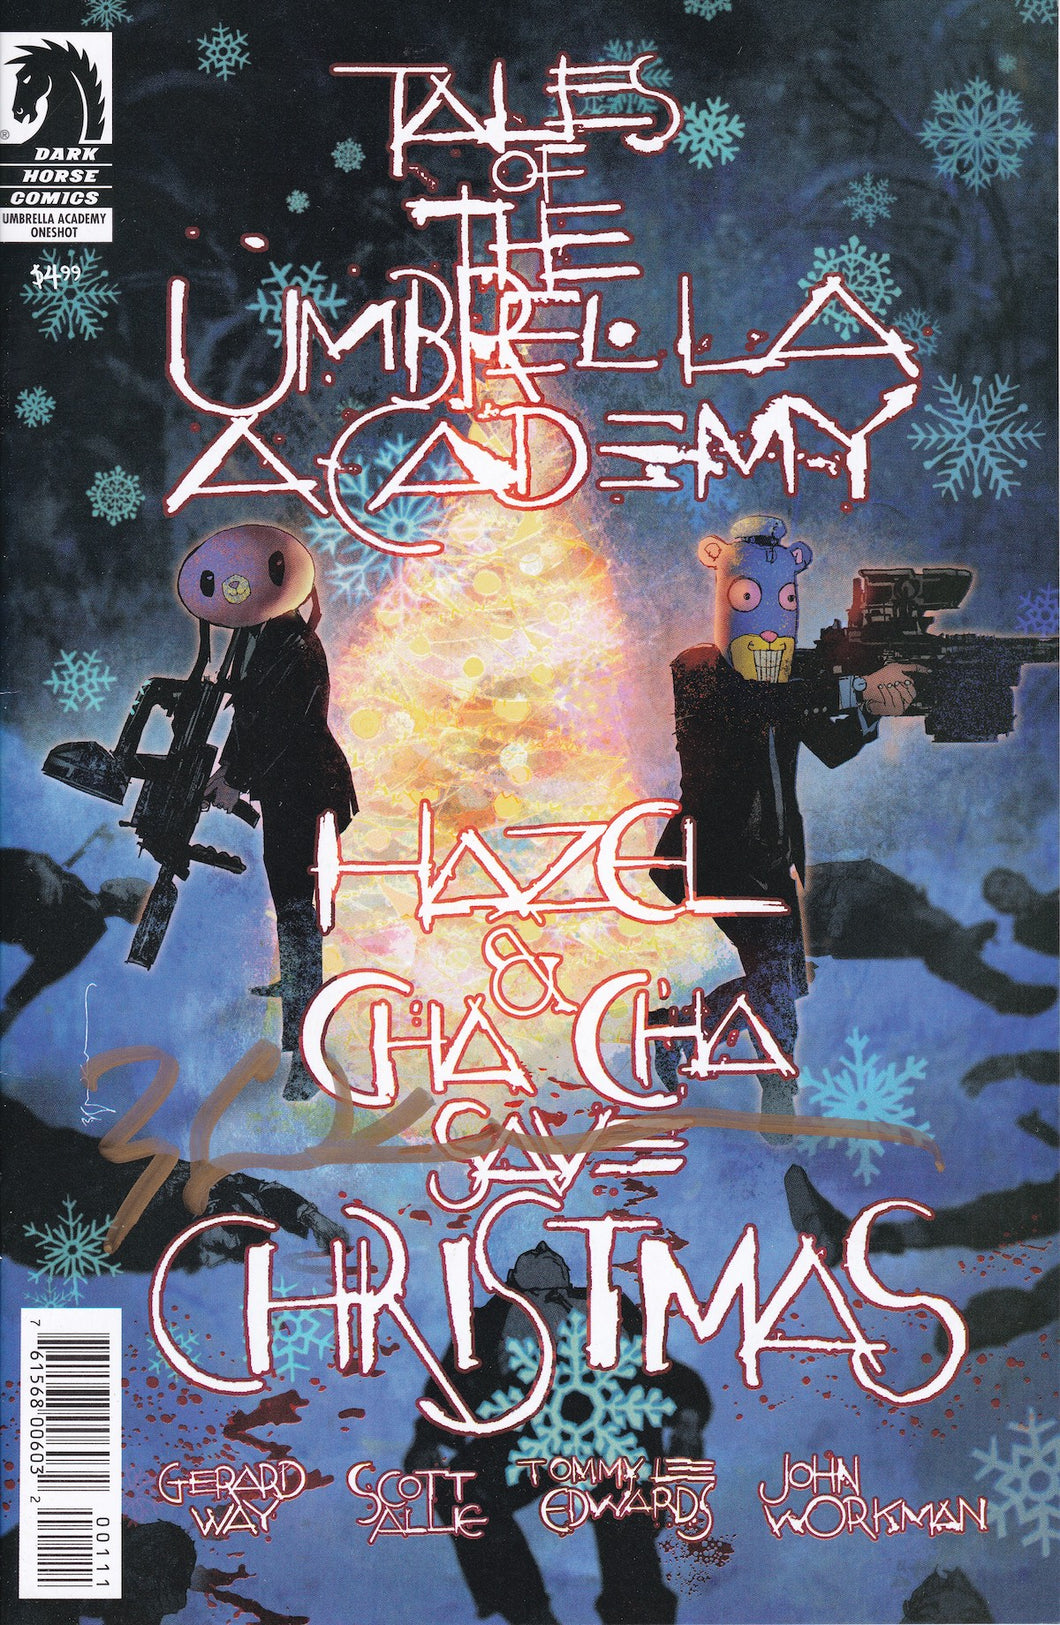 Tales of Umbrella Academy Hazel & ChaCha Save Christmas LCSD Variant Signed